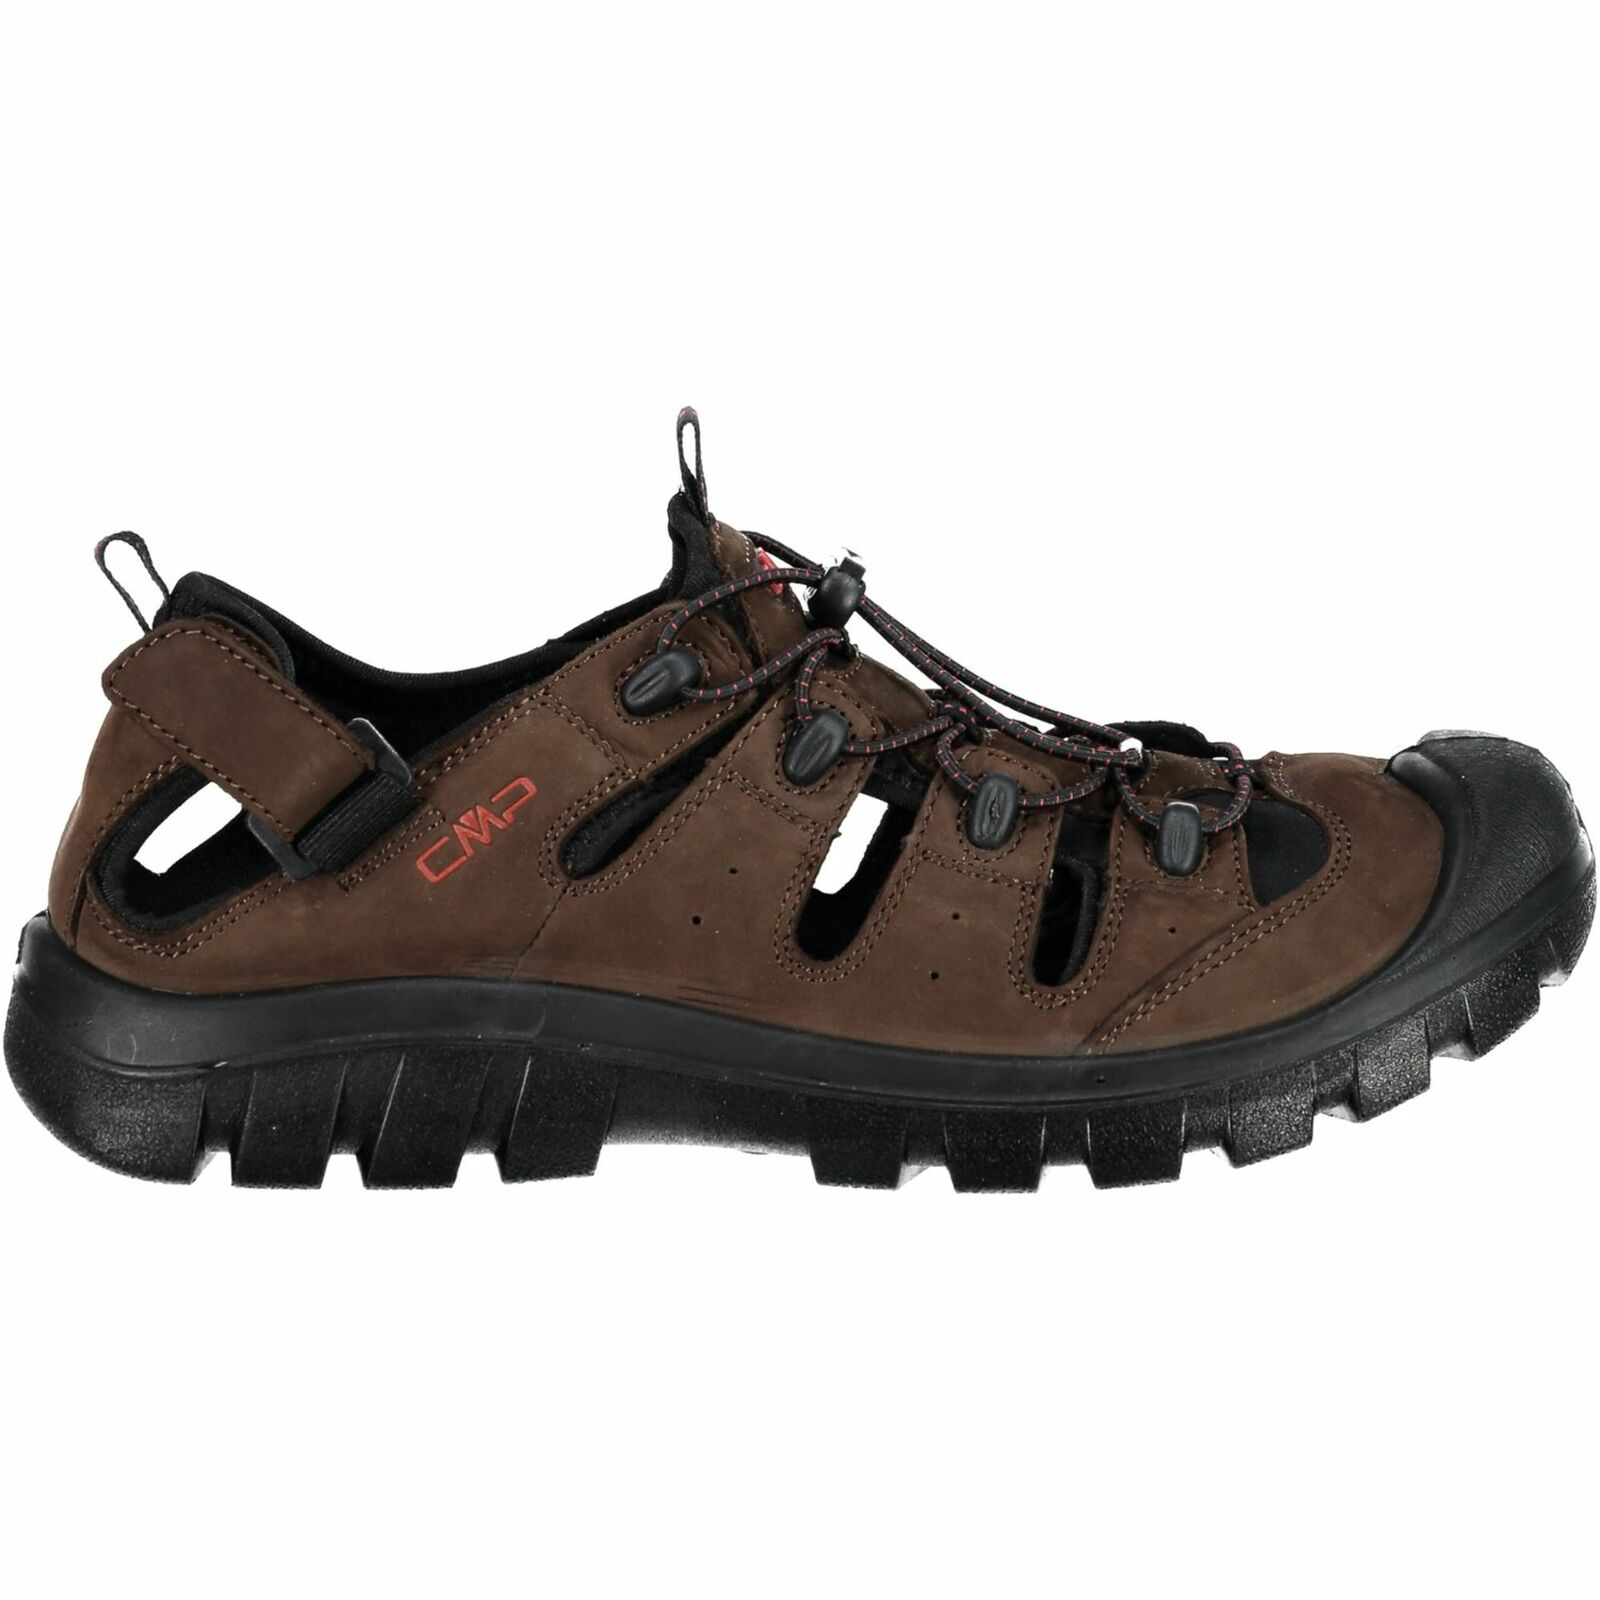 CMP Hiking shoes Avior Hiking Sandal Brown Plain All nubuckleder